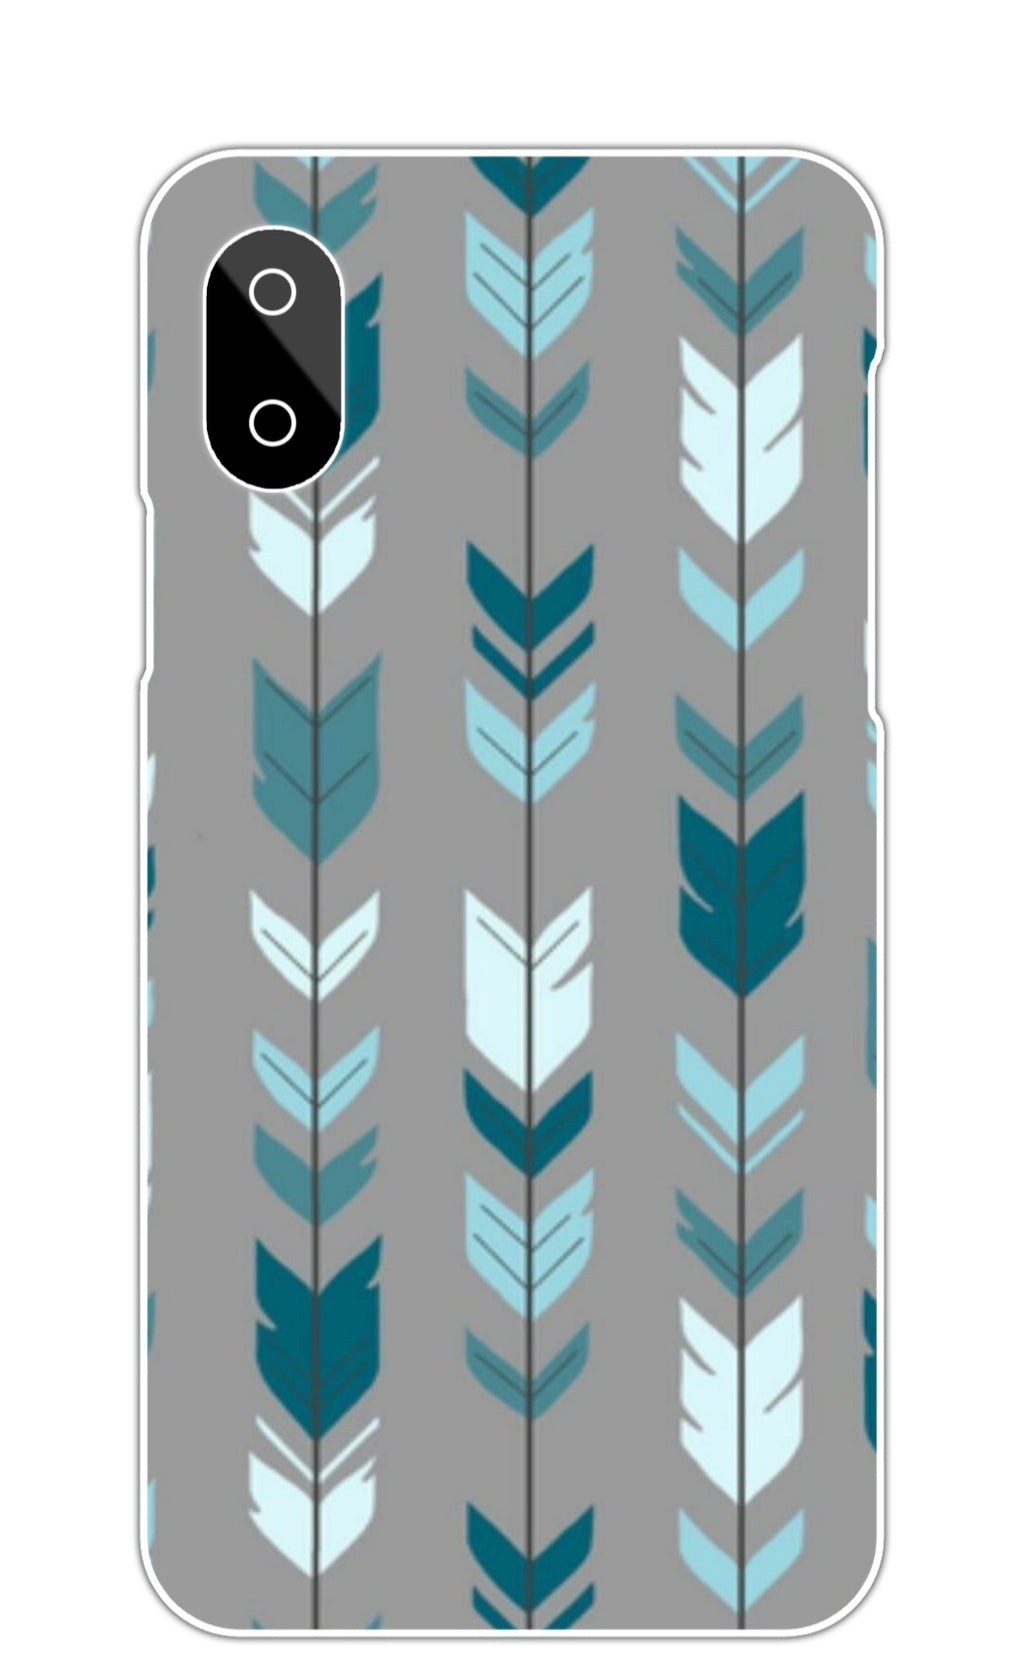 ARROWS PATTERN CASE